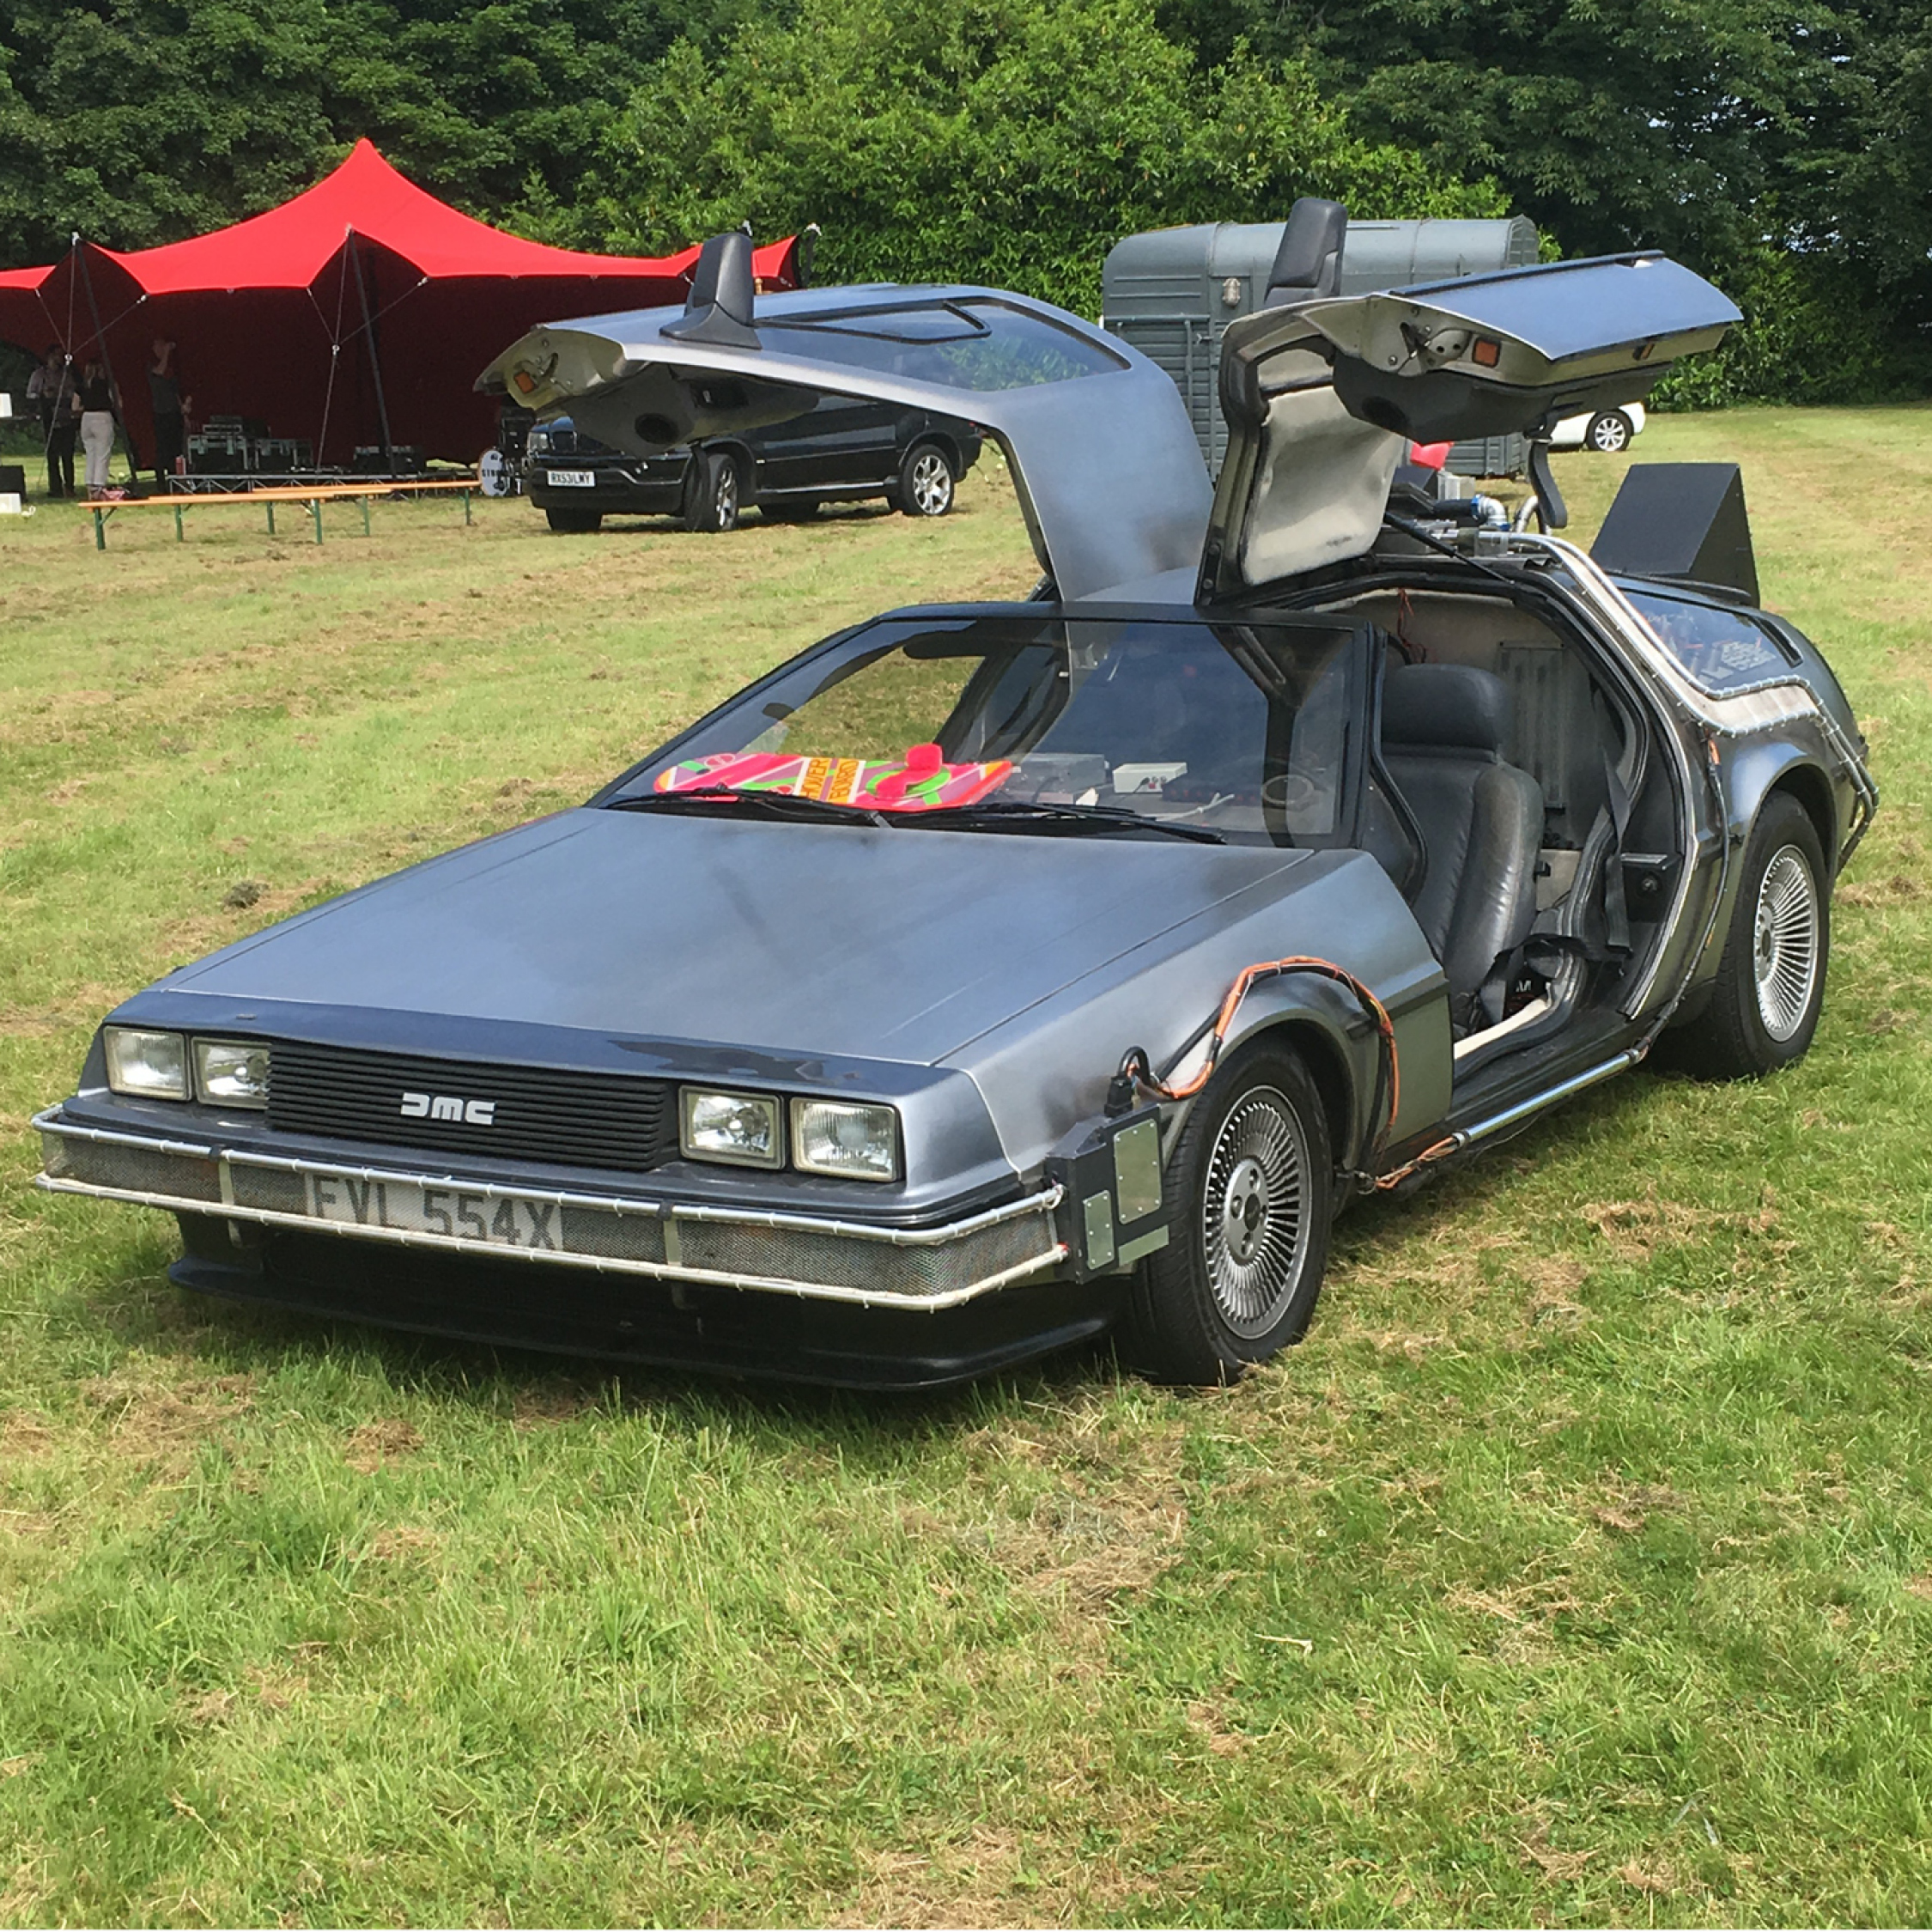 Wedding cars and coaches, wedding transport, back to the future car, time machine car